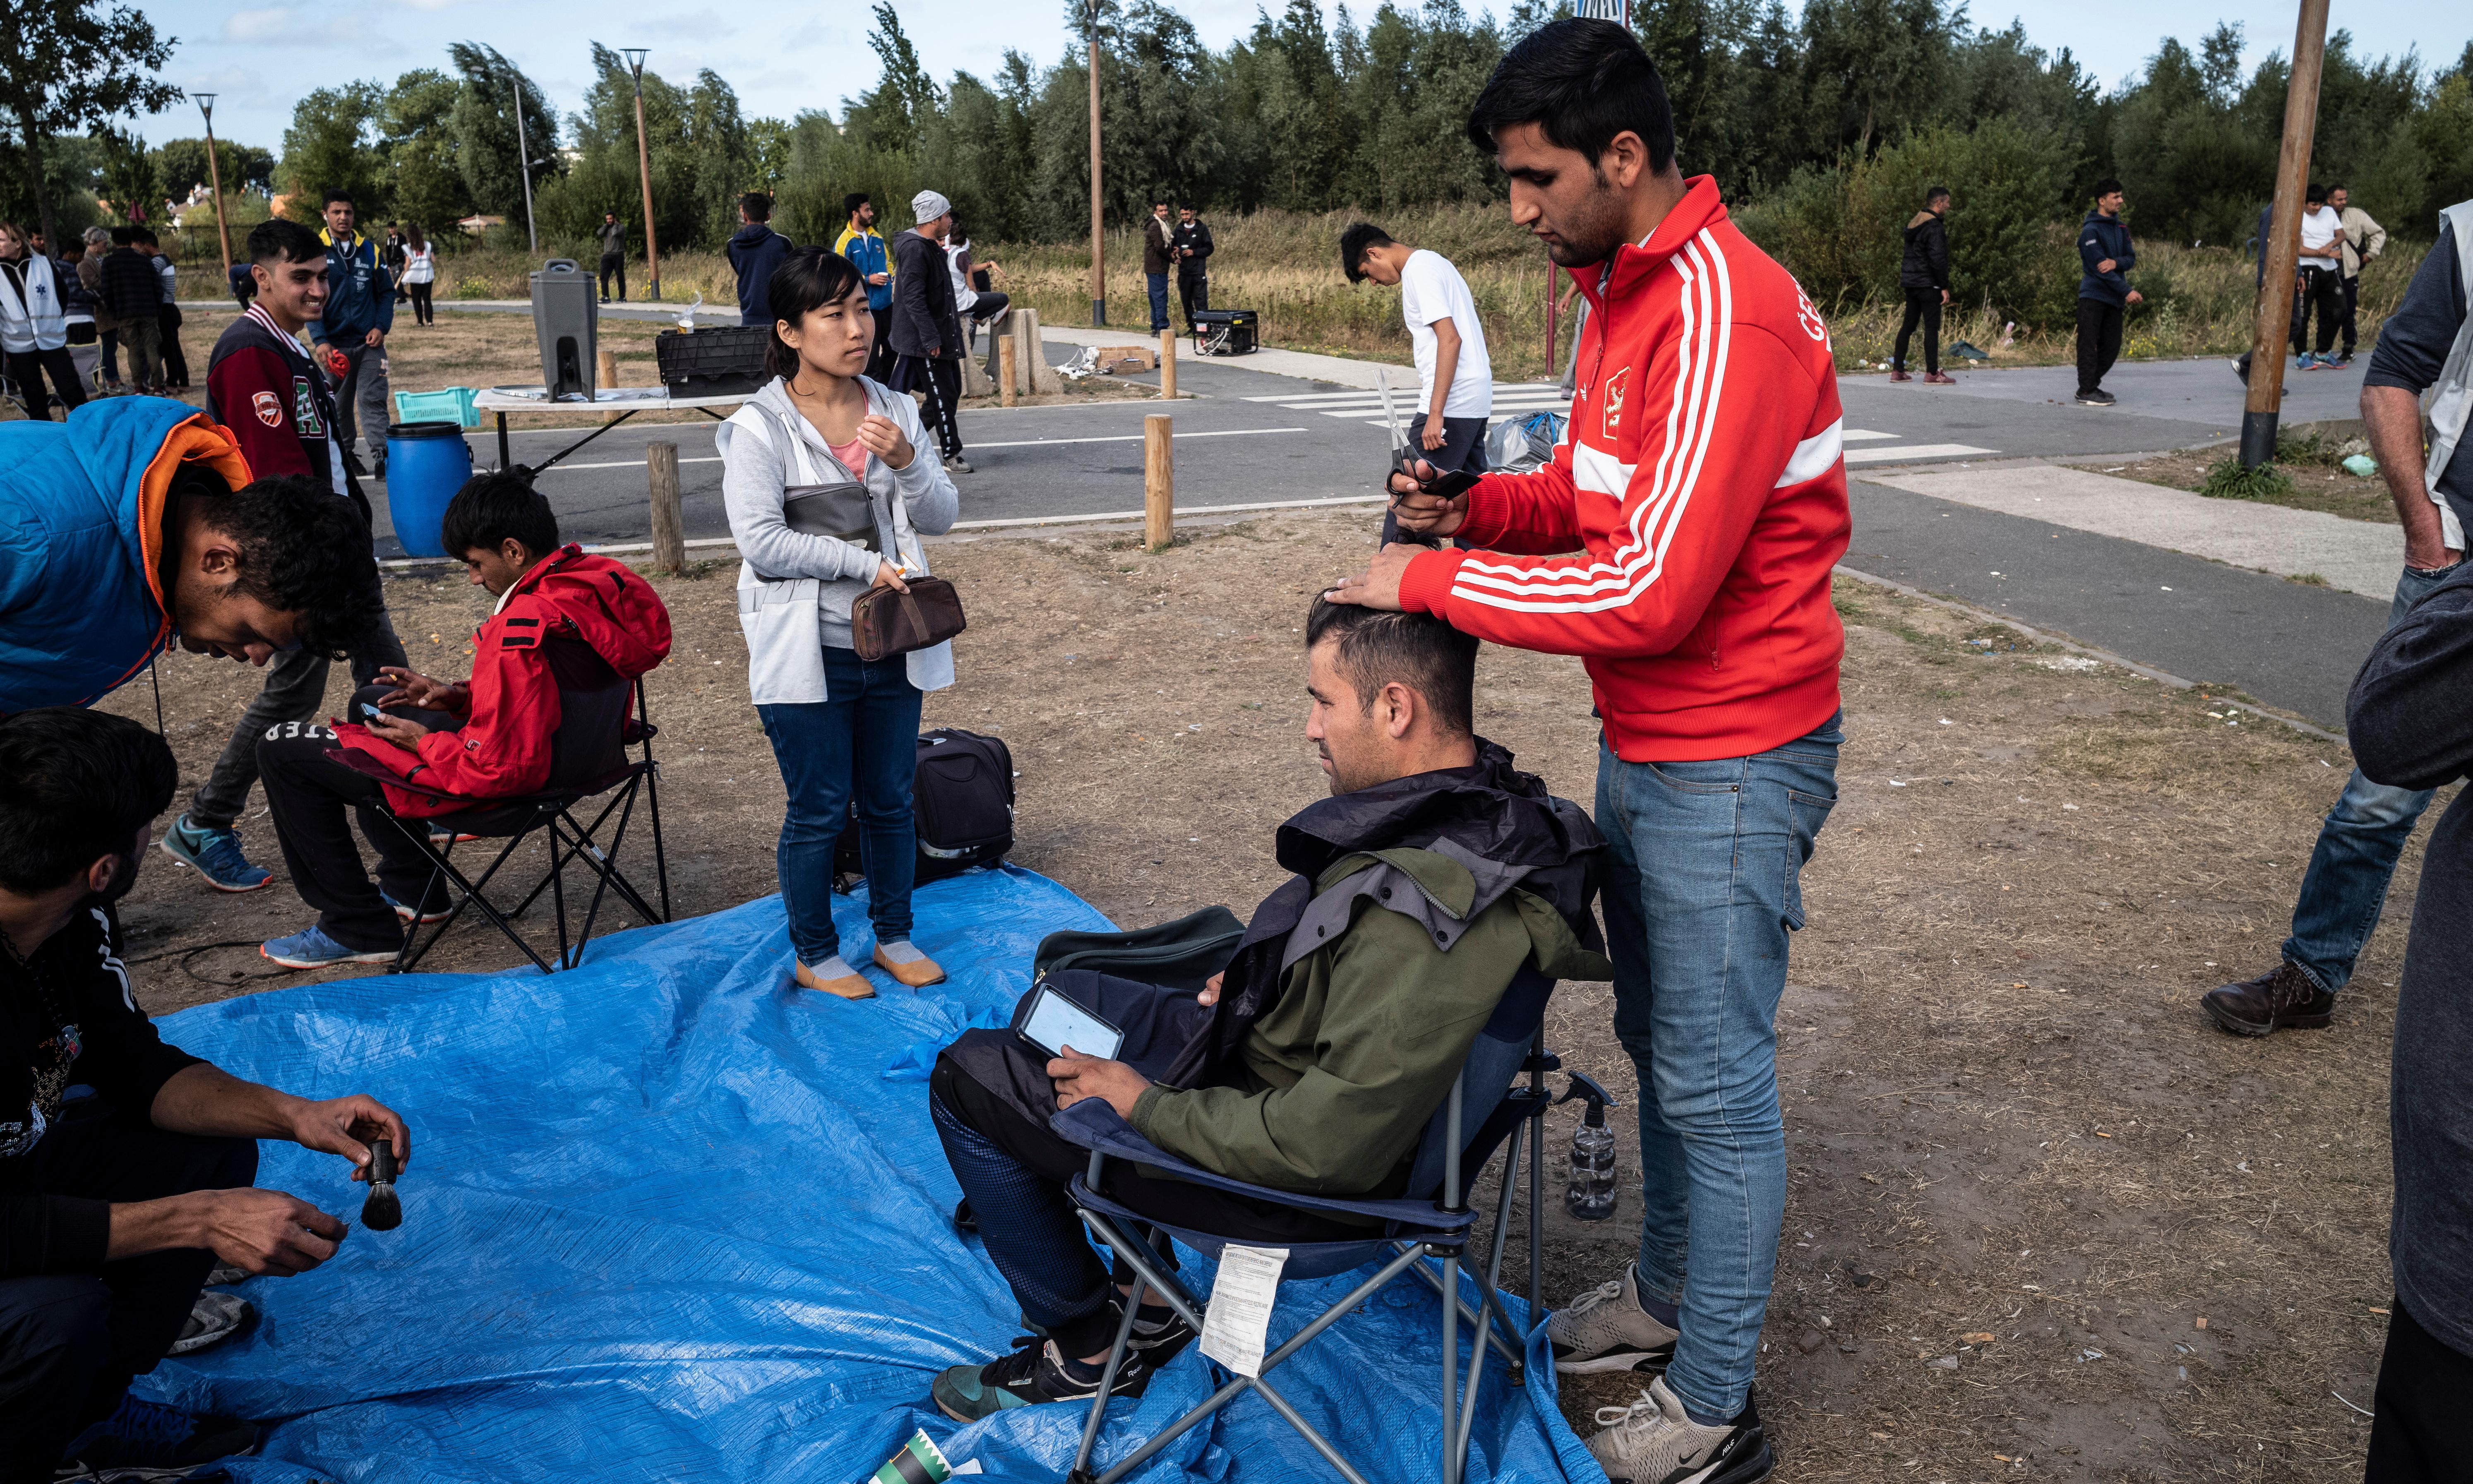 Calais clamps down as asylum seekers say: 'They just beat us'